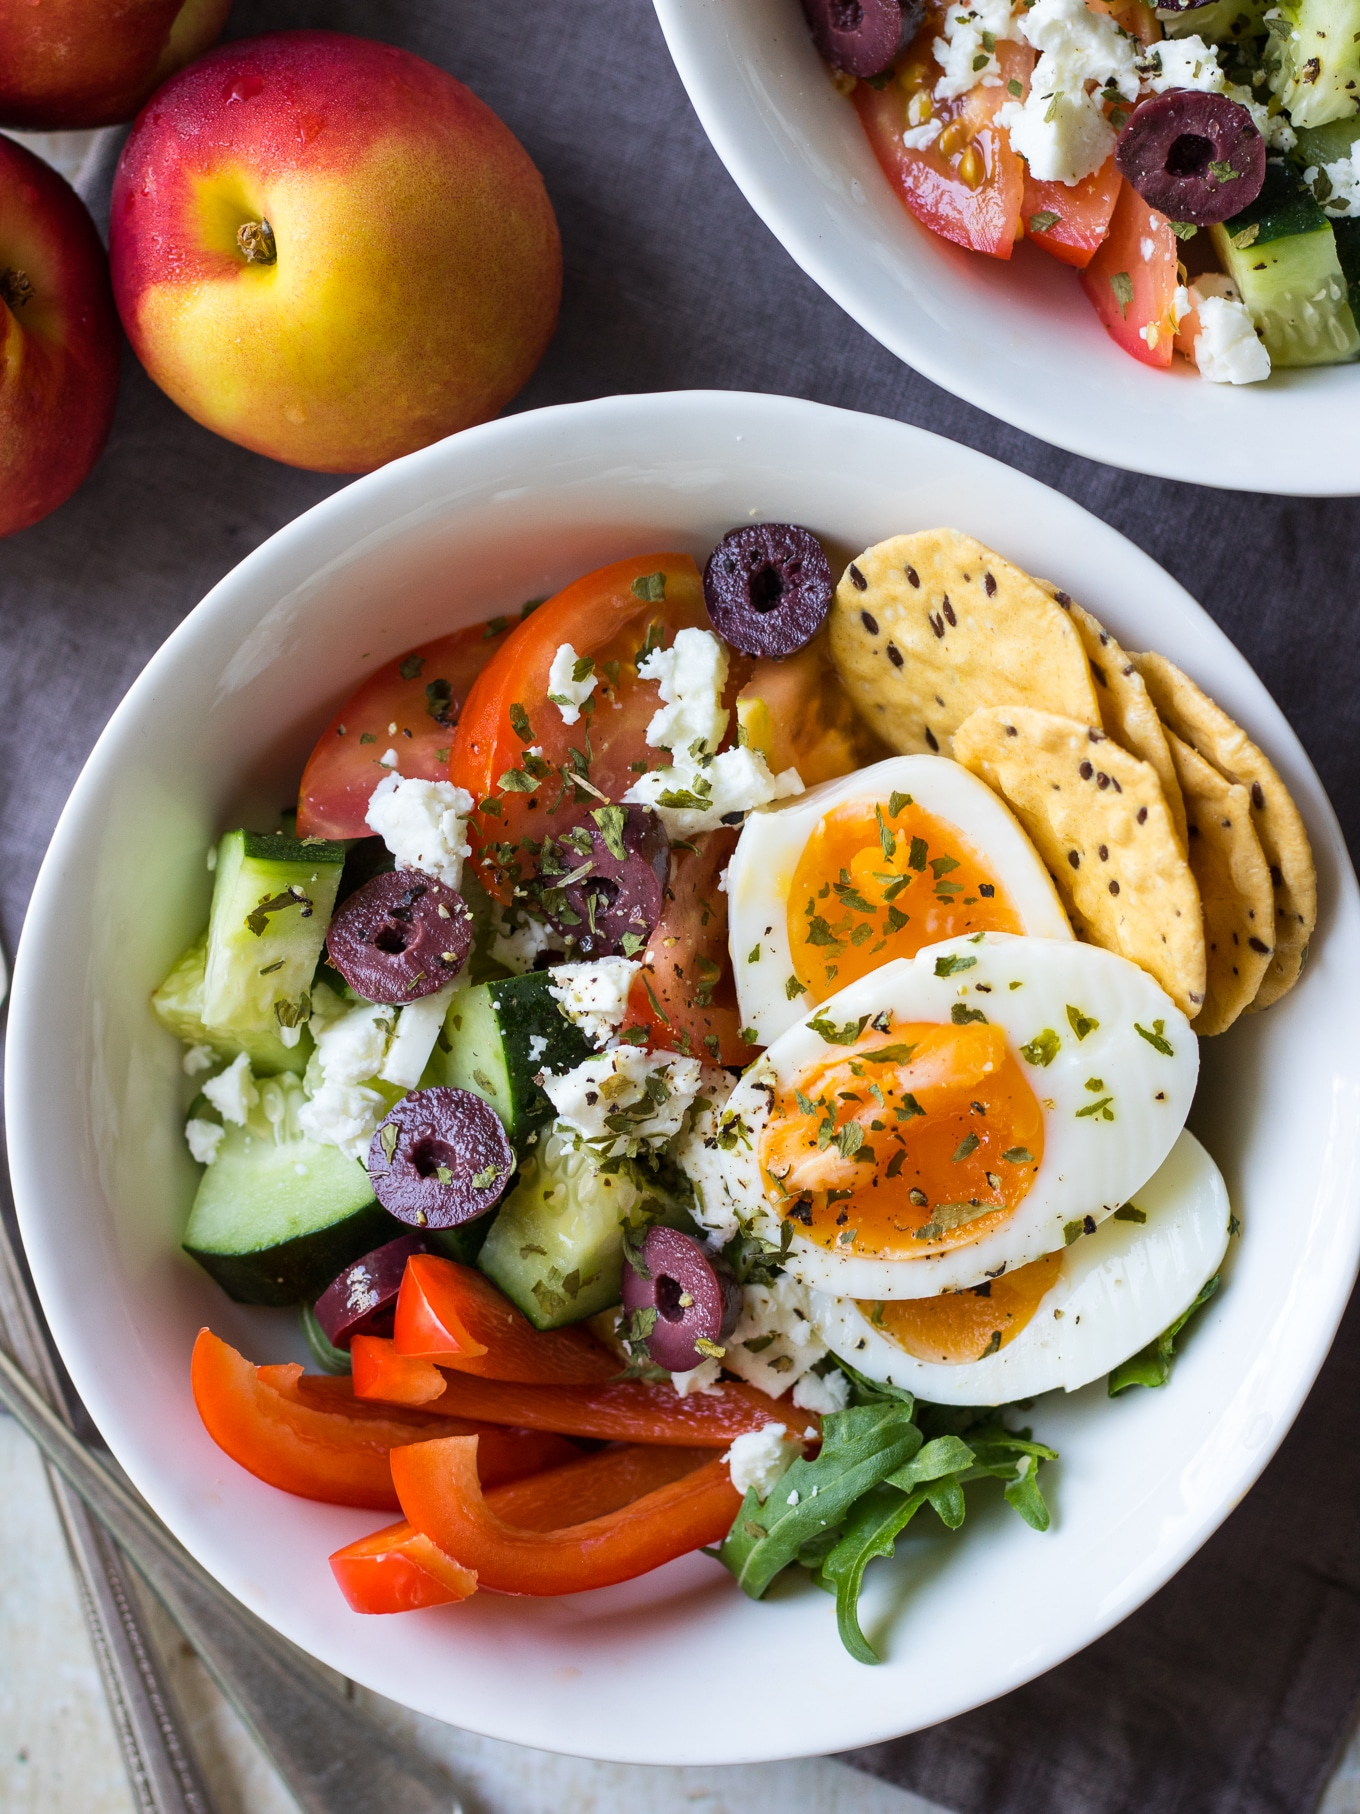 Meal prep breakfast bowls Greek style! Take boiled eggs and add cucumber, tomatoes, capsicum, feta and olives. Loads of fresh veggies and protein will give you the best healthy start to the day! #breakfastbowl #mealprep #glutenfree #breakfastsalad